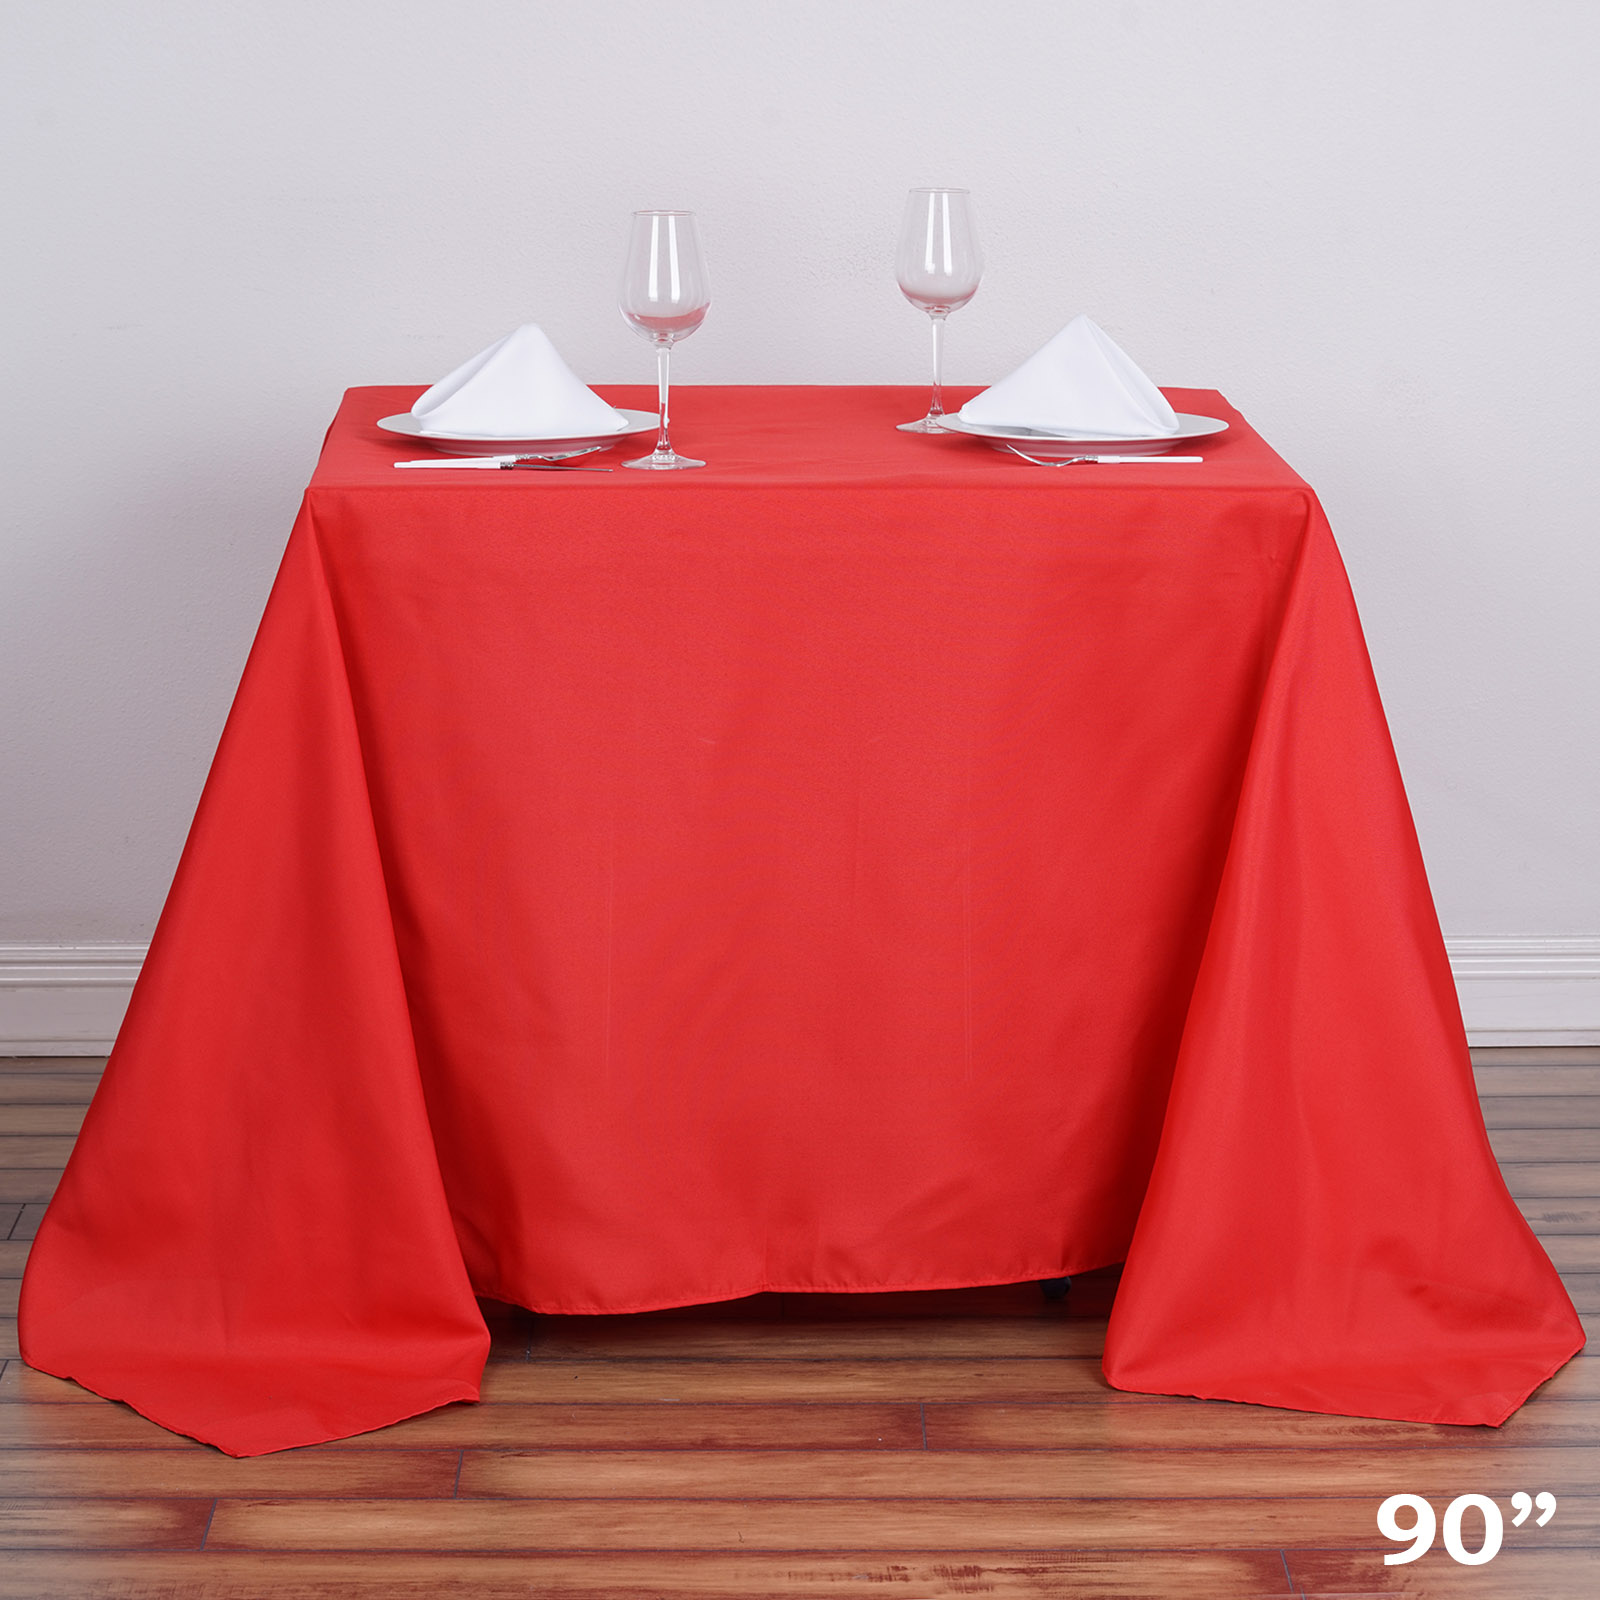 "90x90"" SQUARE POLYESTER Tablecloth Cheap Table Linens Decorations"